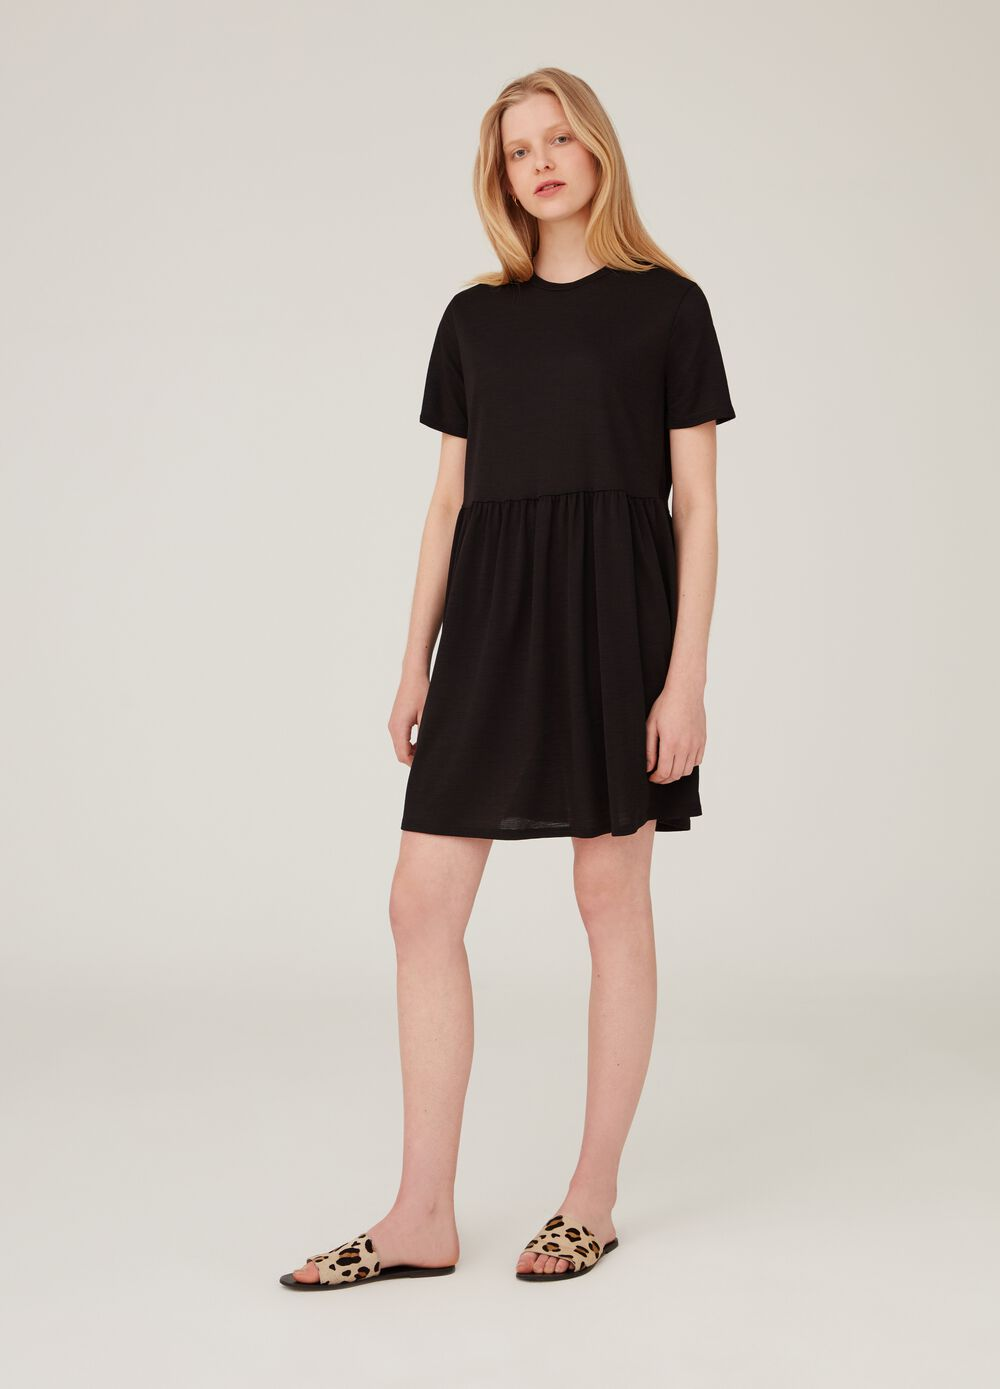 Short-sleeved stretch dress with round neckline.